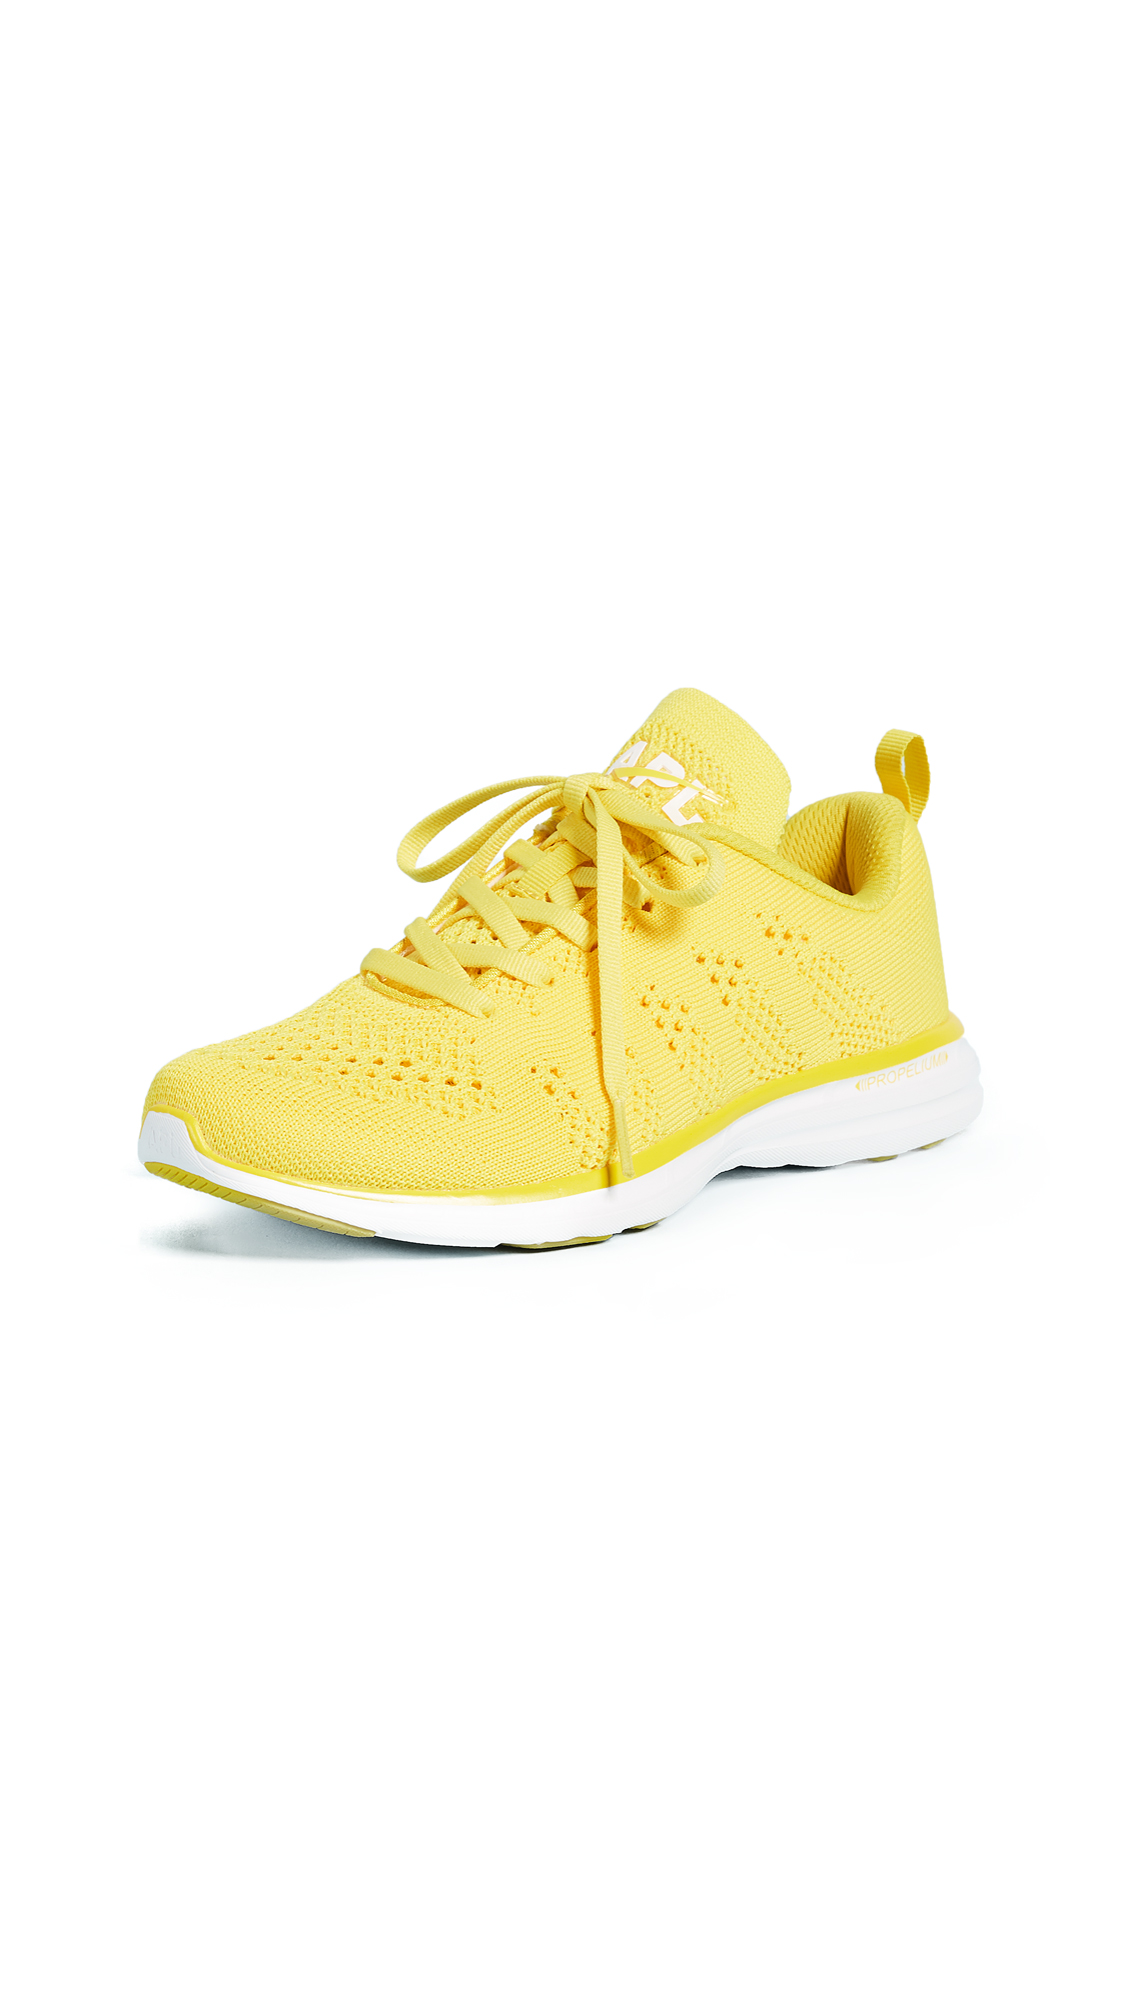 APL: Athletic Propulsion Labs TechLoom Pro Sneakers - Racing Yellow/White